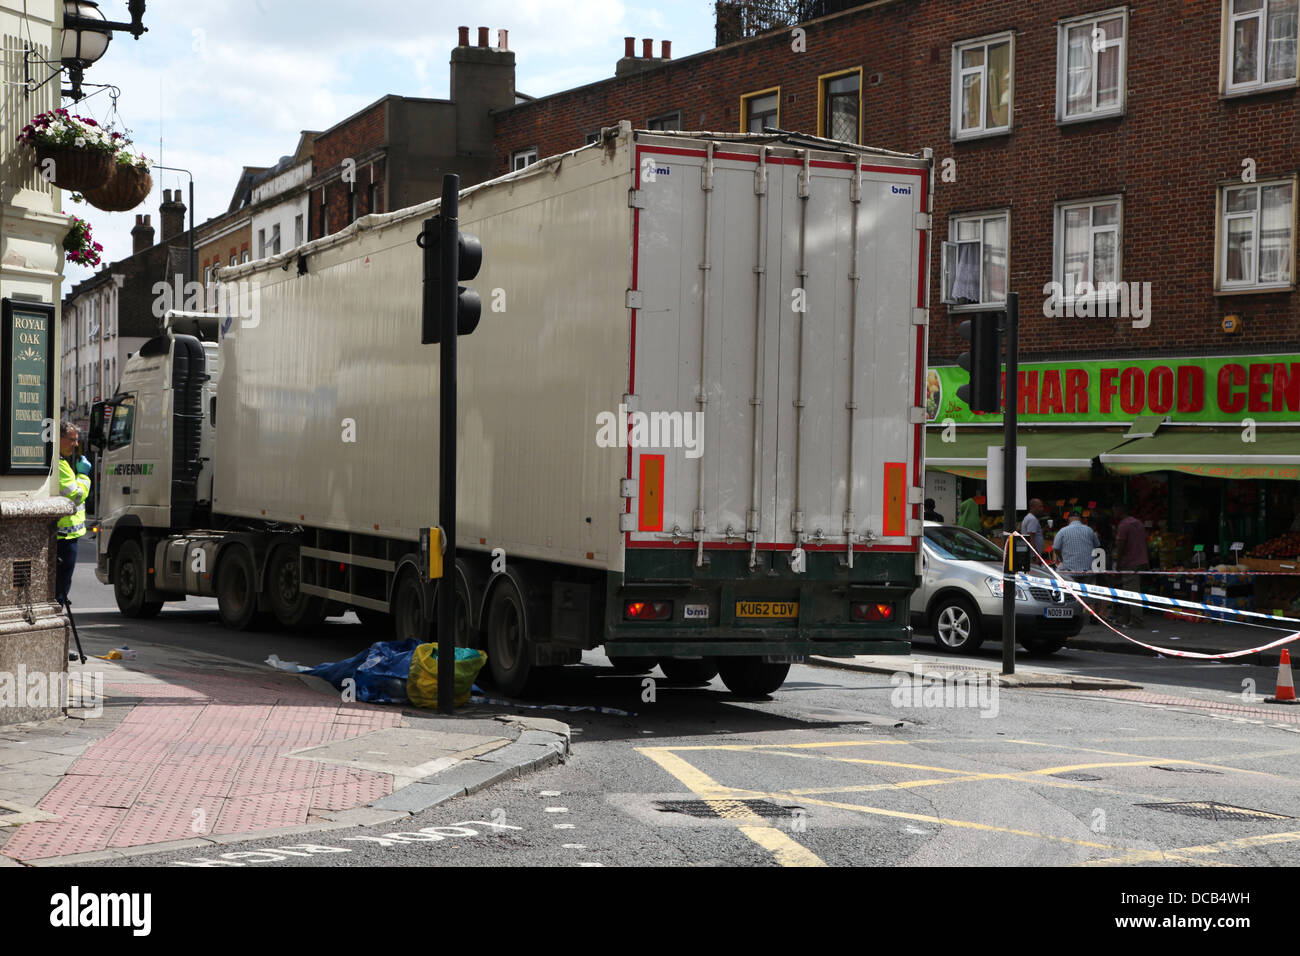 Police and contractors attend to a lorry following a road accident - Stock Image